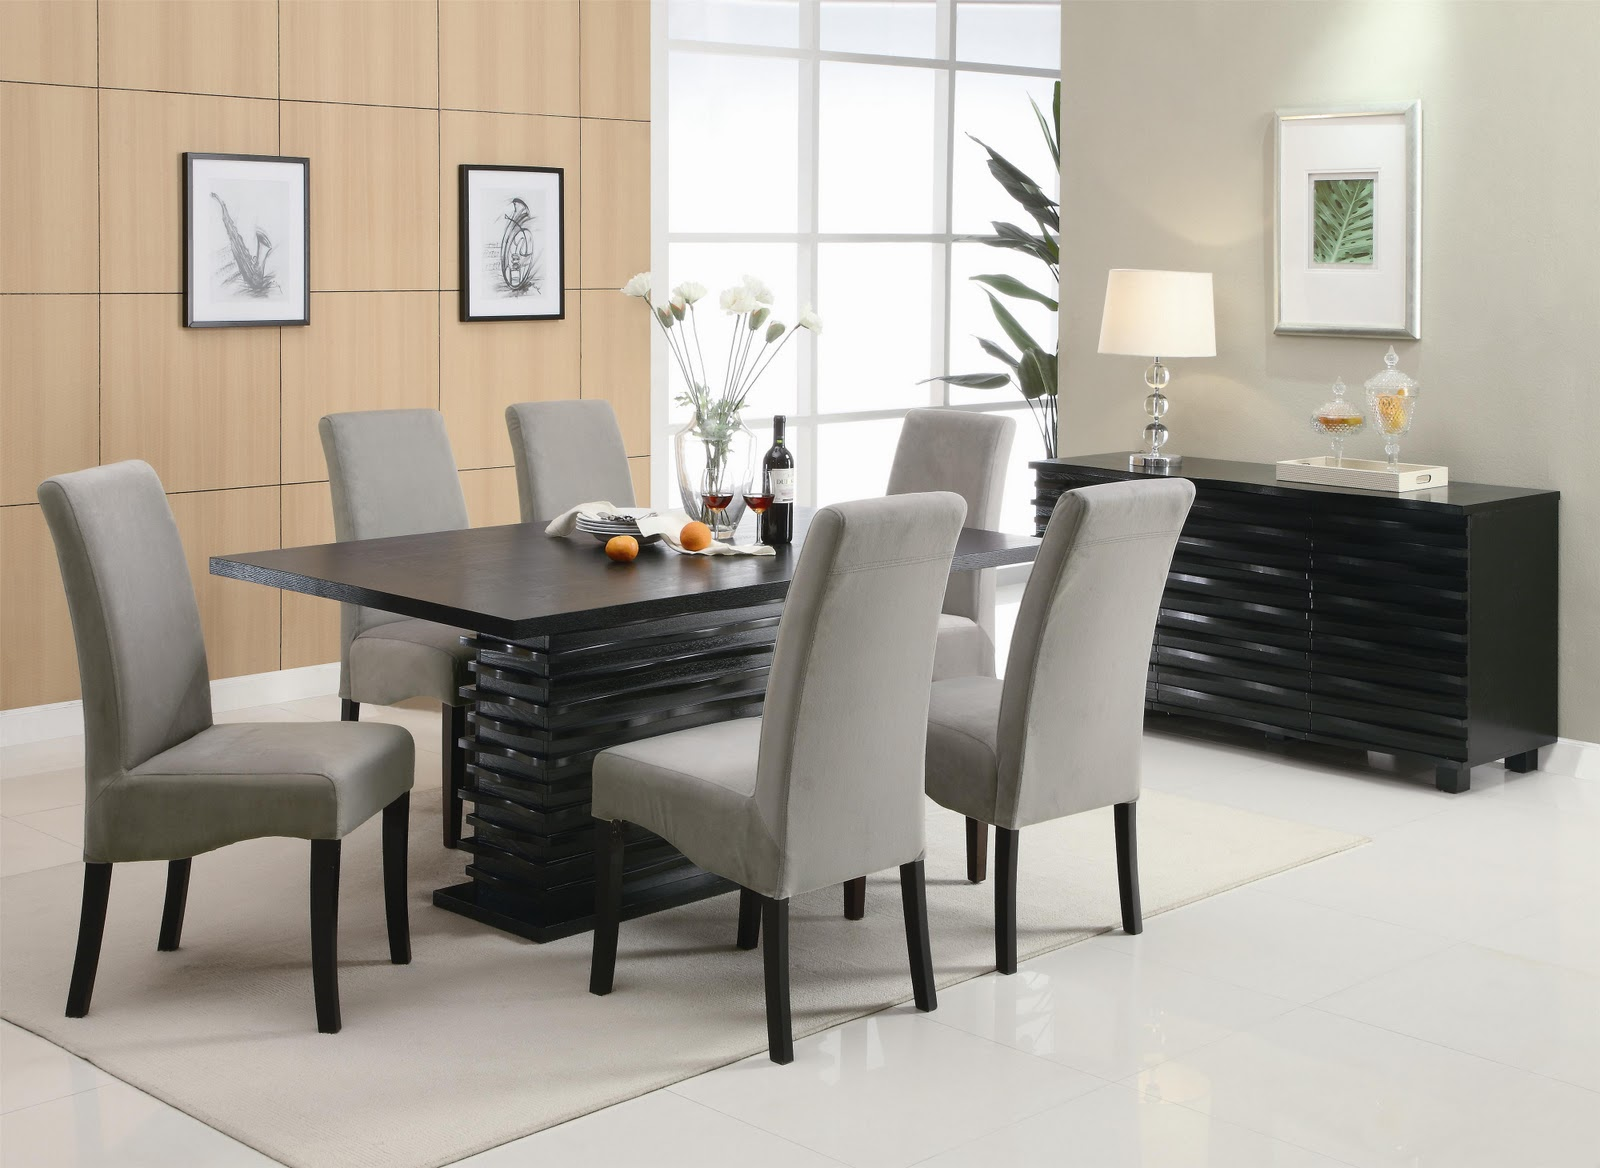 dining room royal furniture outlet. Black Bedroom Furniture Sets. Home Design Ideas